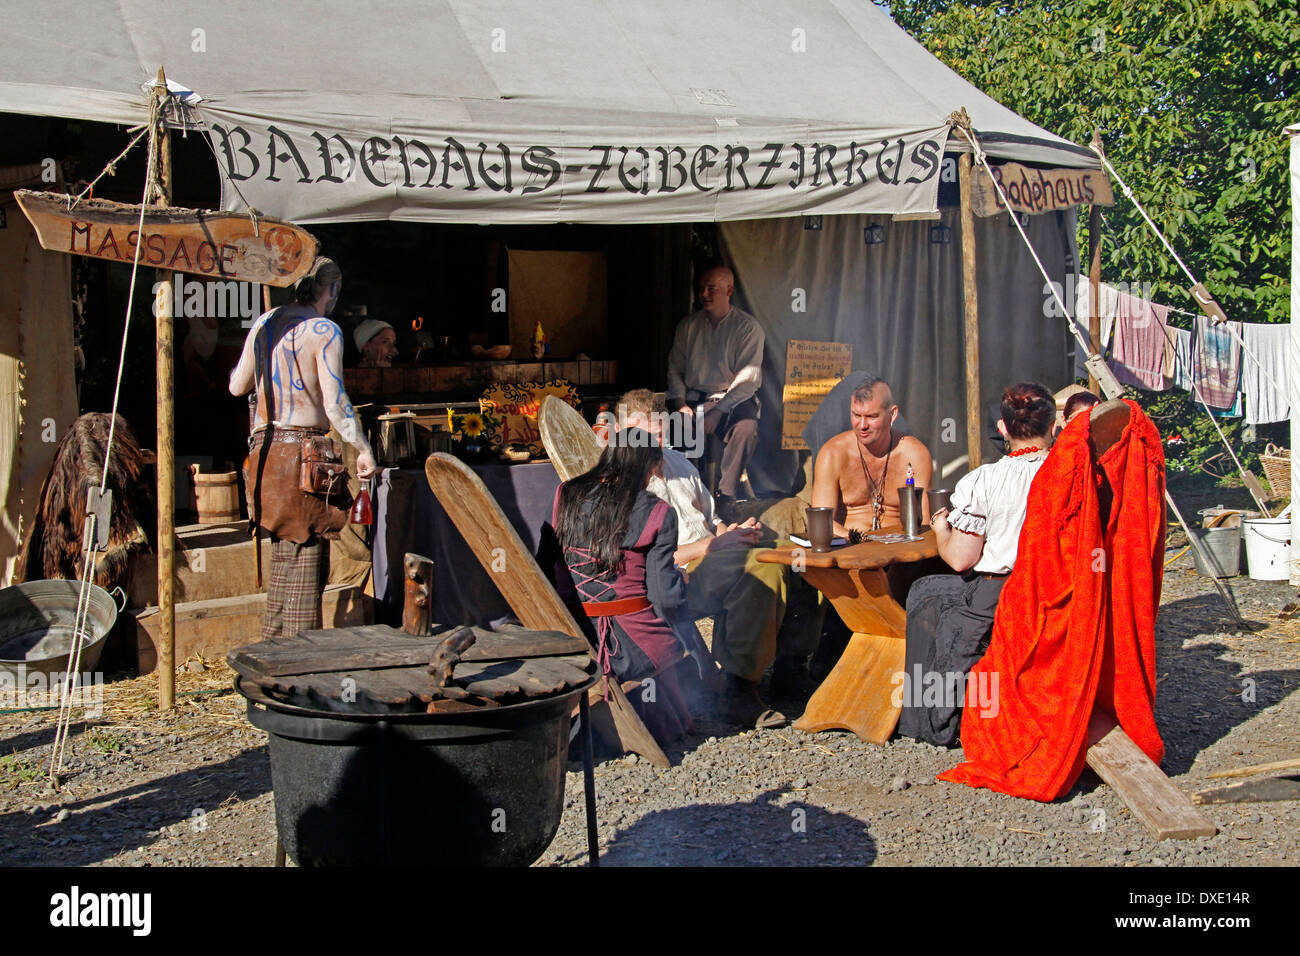 Medieval Bathhouse Knight Tournament Middle Ages Market Ronneburg Hesse Germany